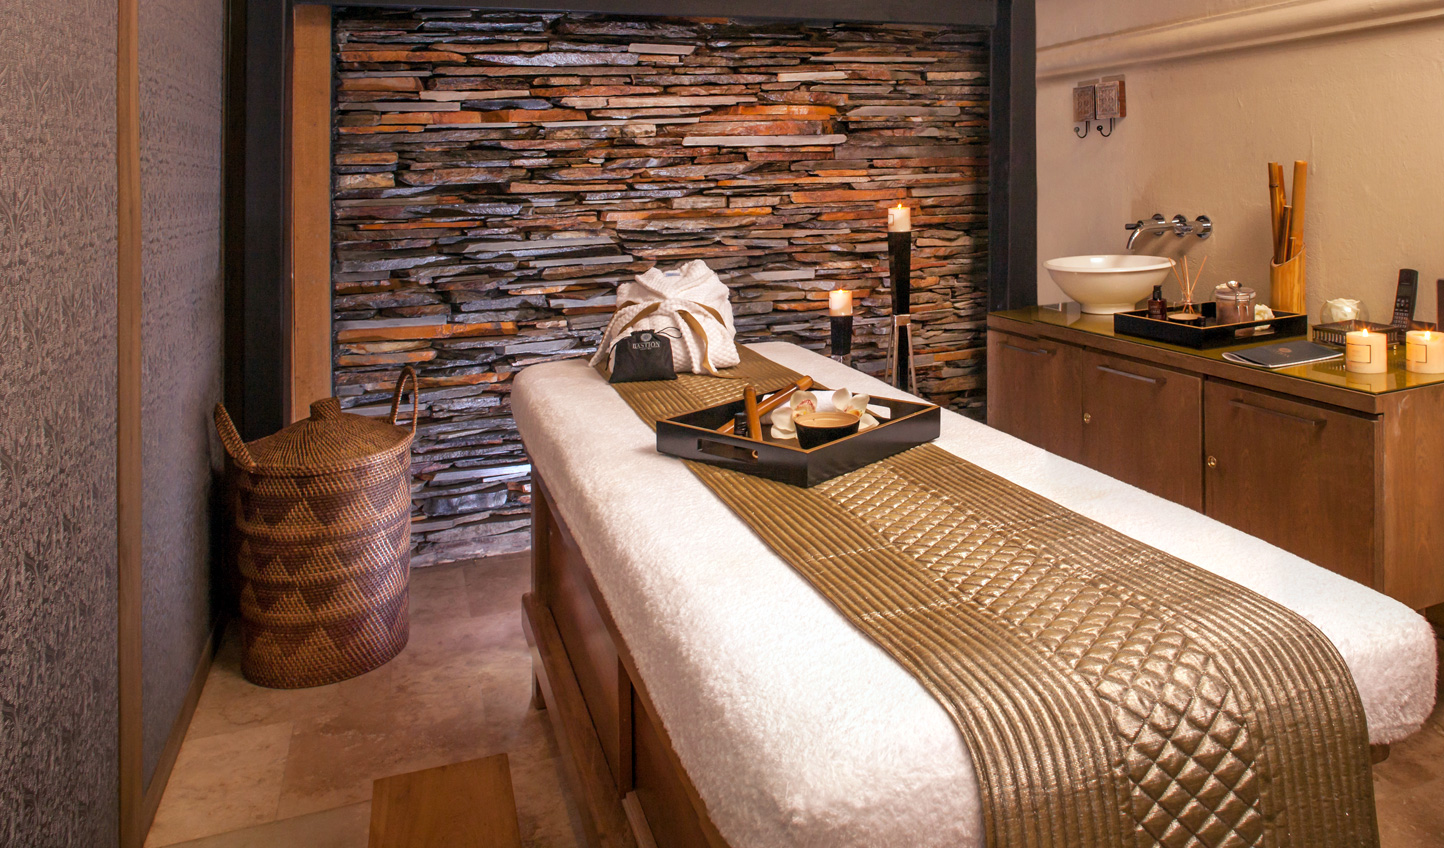 Soothe your senses in the spa